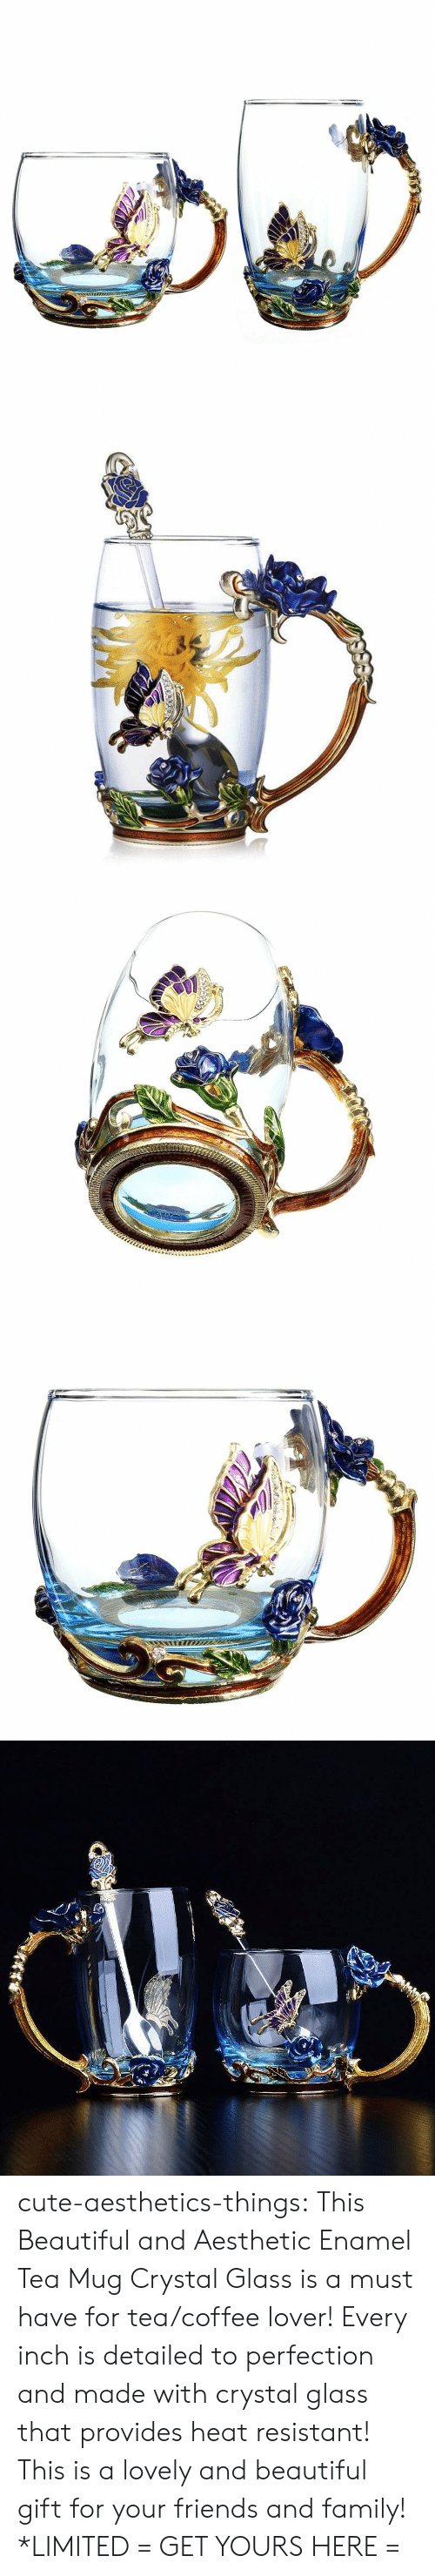 Beautiful, Cute, and Family: cute-aesthetics-things: This Beautiful and Aesthetic Enamel Tea Mug Crystal Glass is a must have for tea/coffee lover! Every inch is detailed to perfection and made with crystal glass that provides heat resistant! This is a lovely and beautiful gift for your friends and family! *LIMITED = GET YOURS HERE =